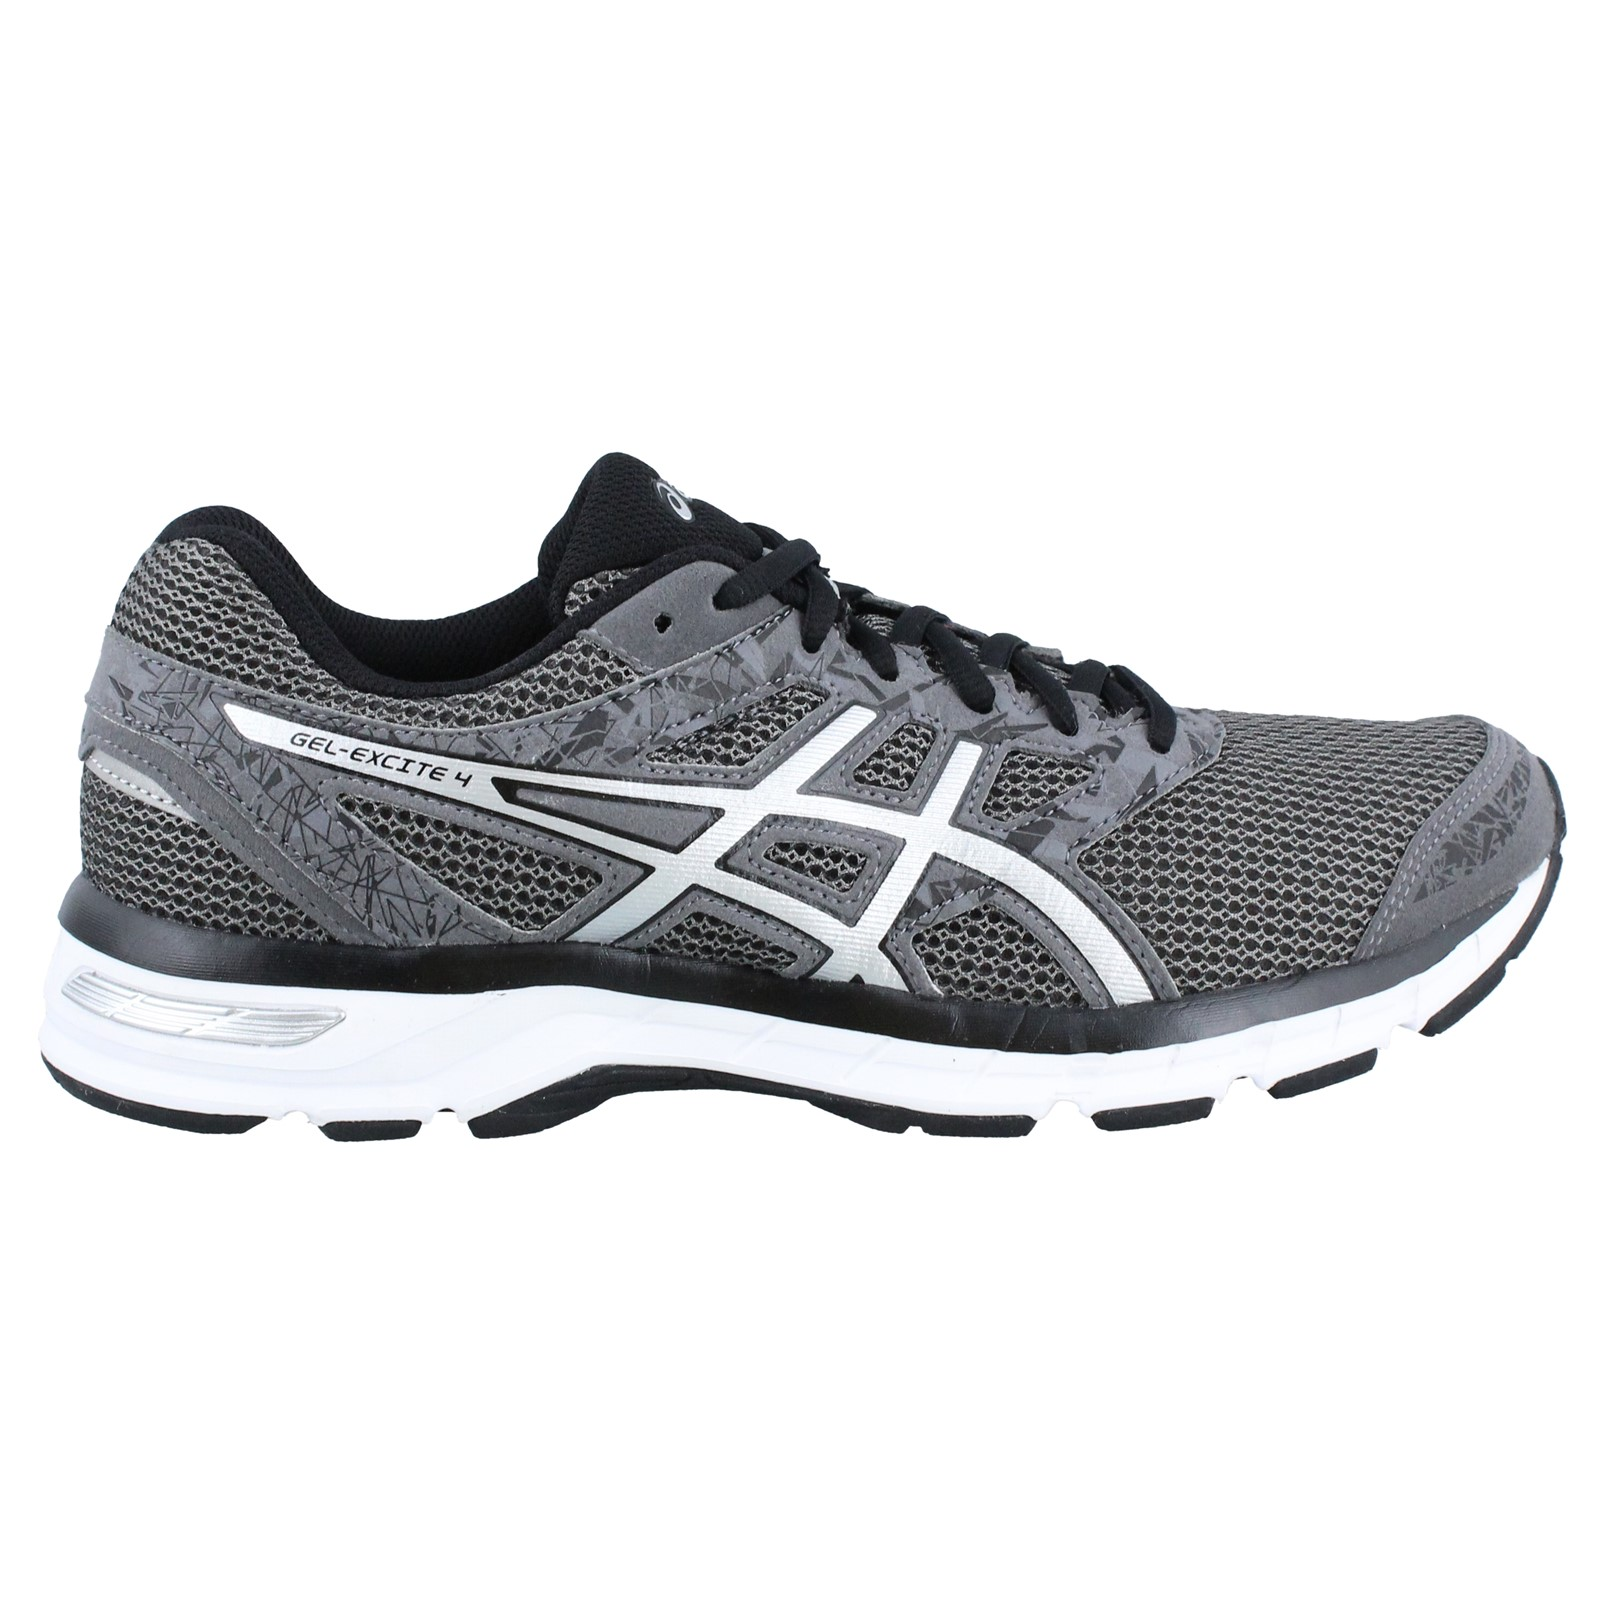 Men's Asics, Gel Excite 4 Running Sneaker Wide Width